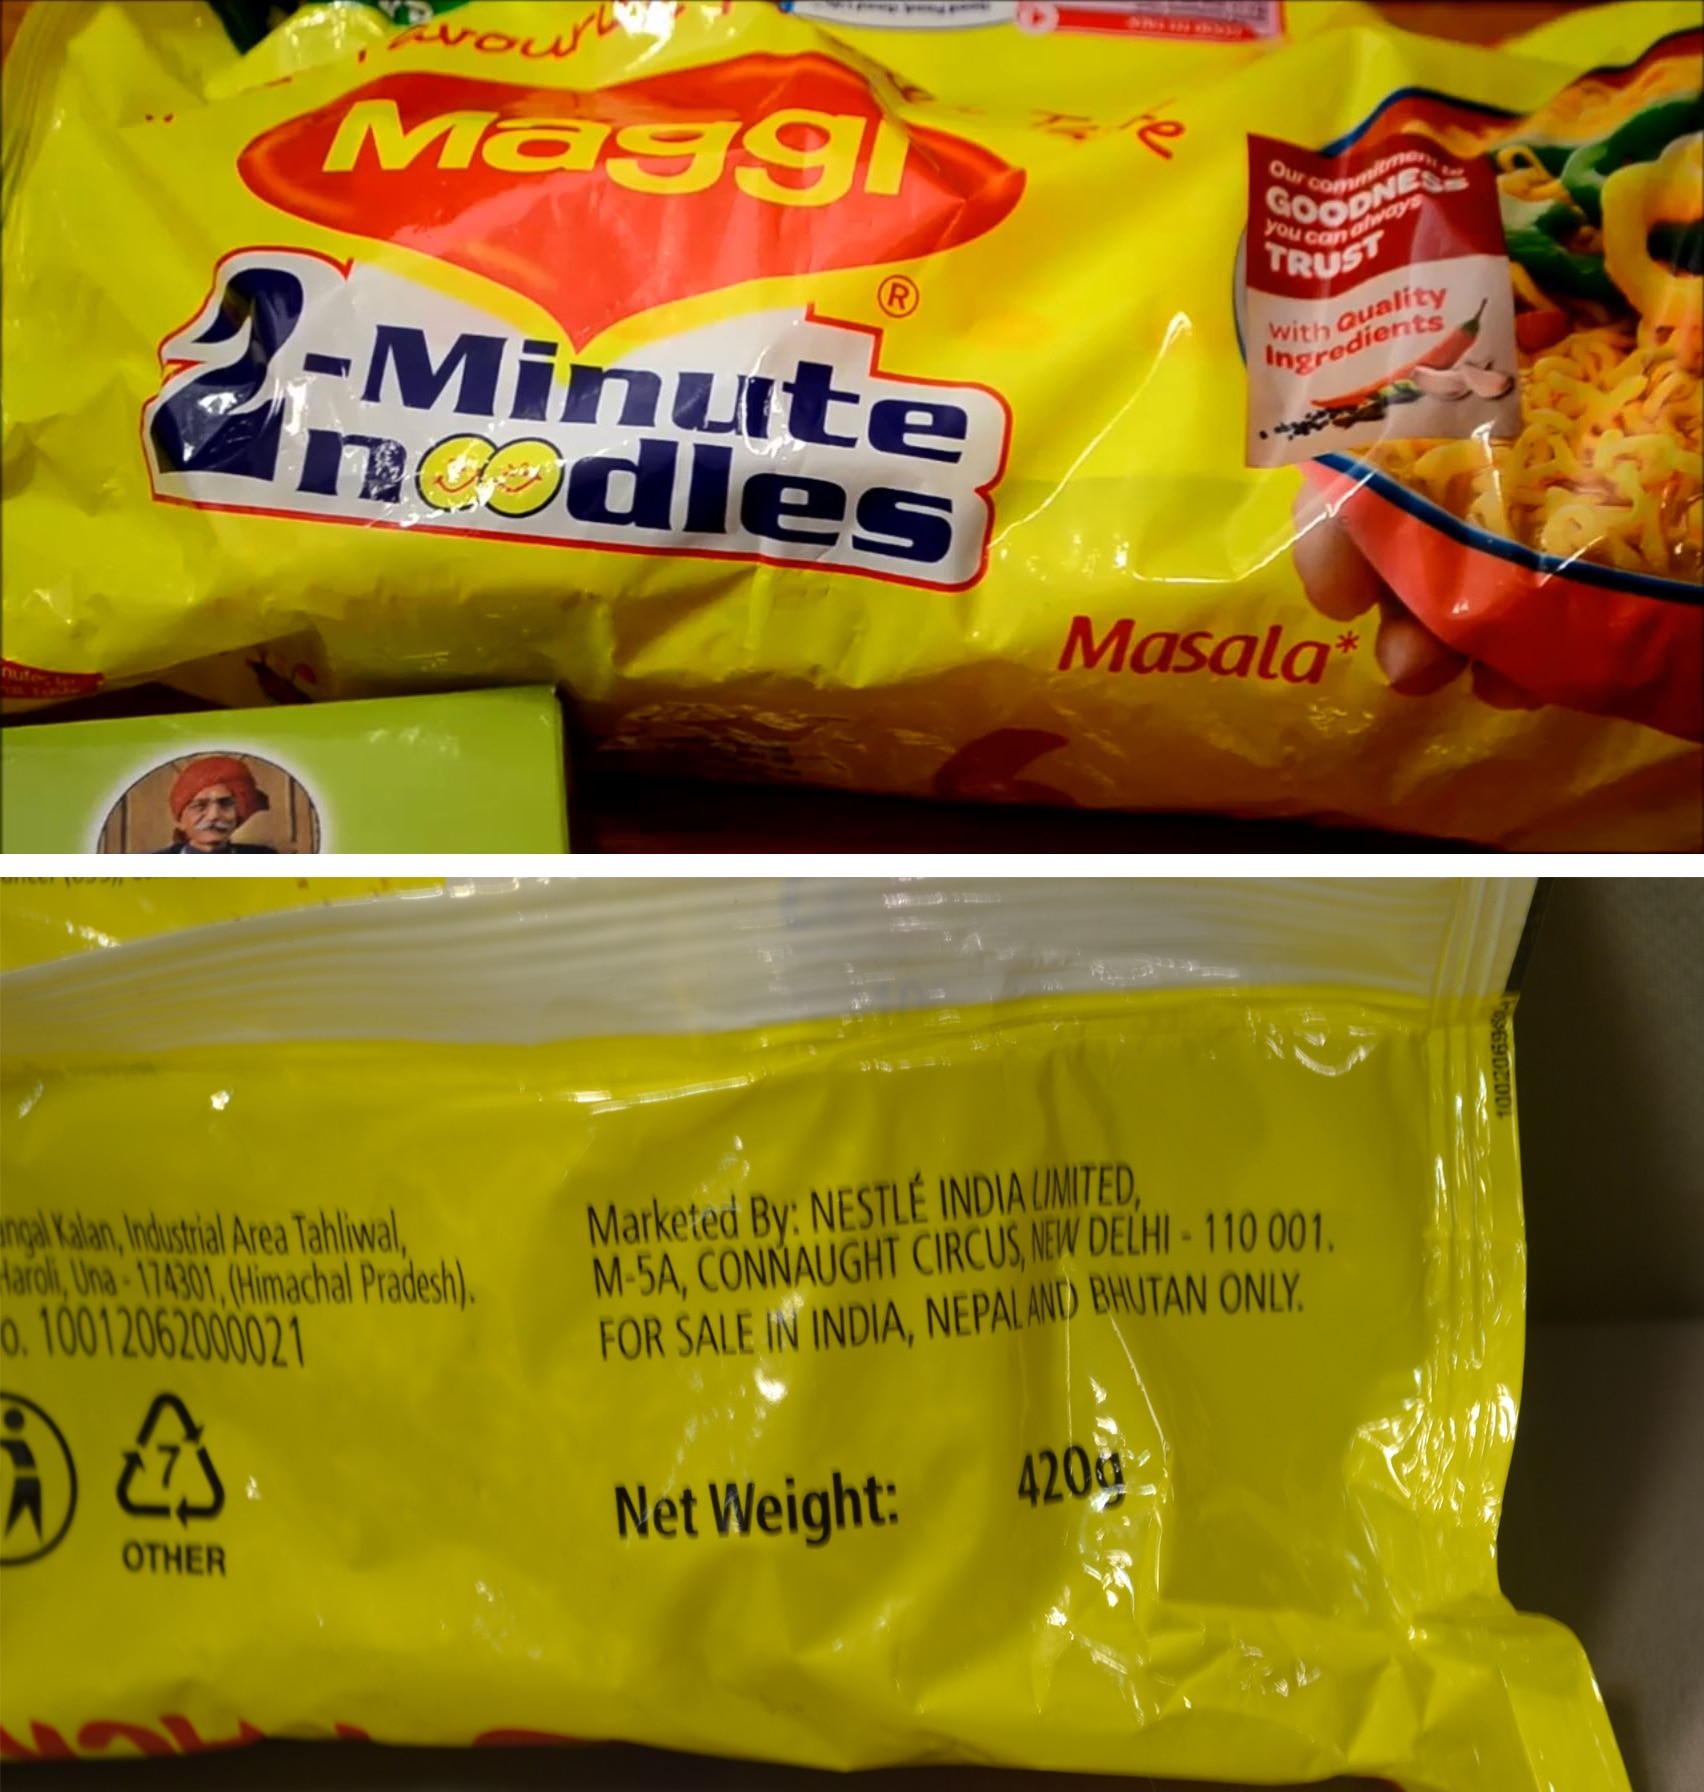 Labels reveal foods not intended for sale in Australia are